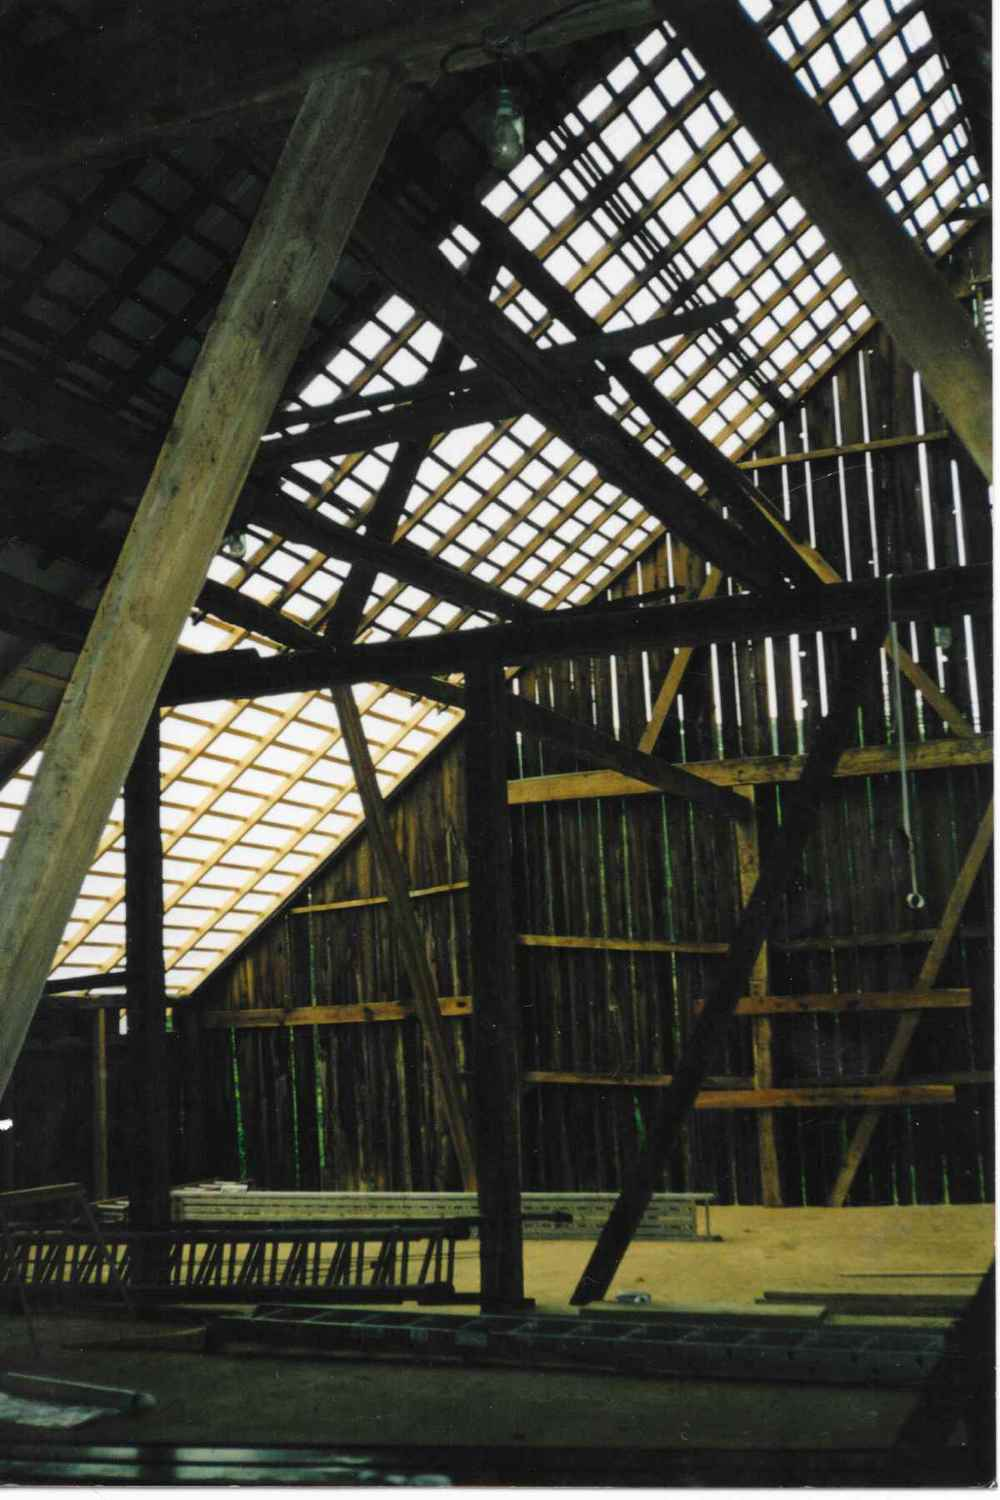 The upper story of the barn at Chanteclaire Farm during renovation.  Note the work occurring on the roof.